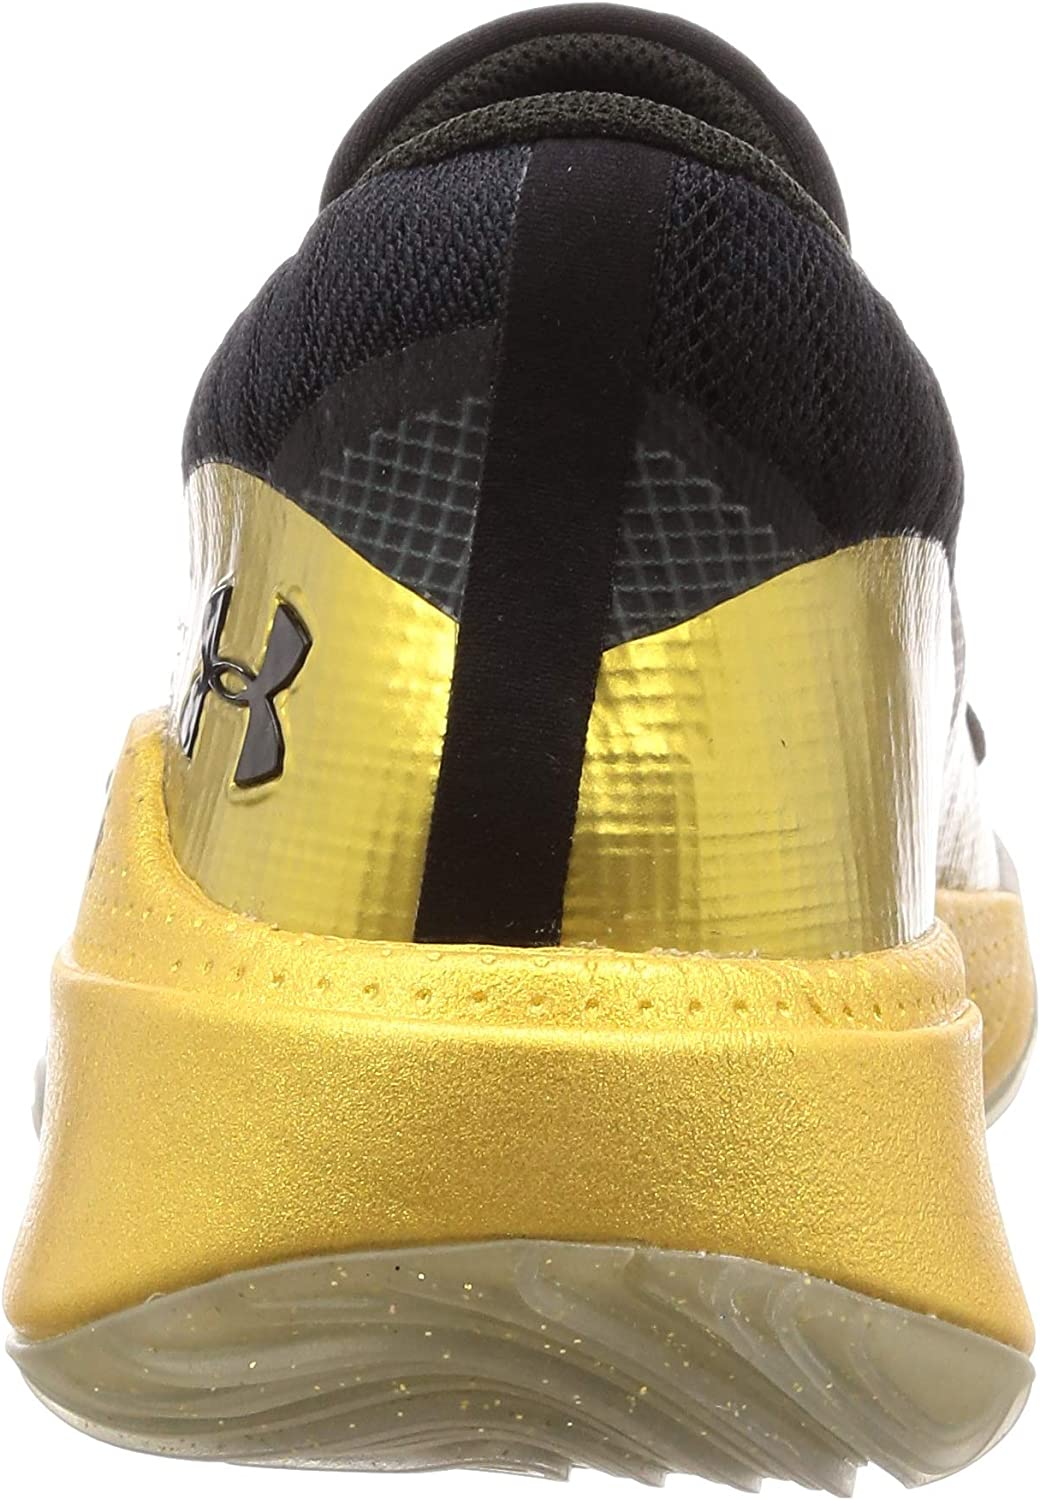 Under Armour Mens Spawn Low Basketball Shoes